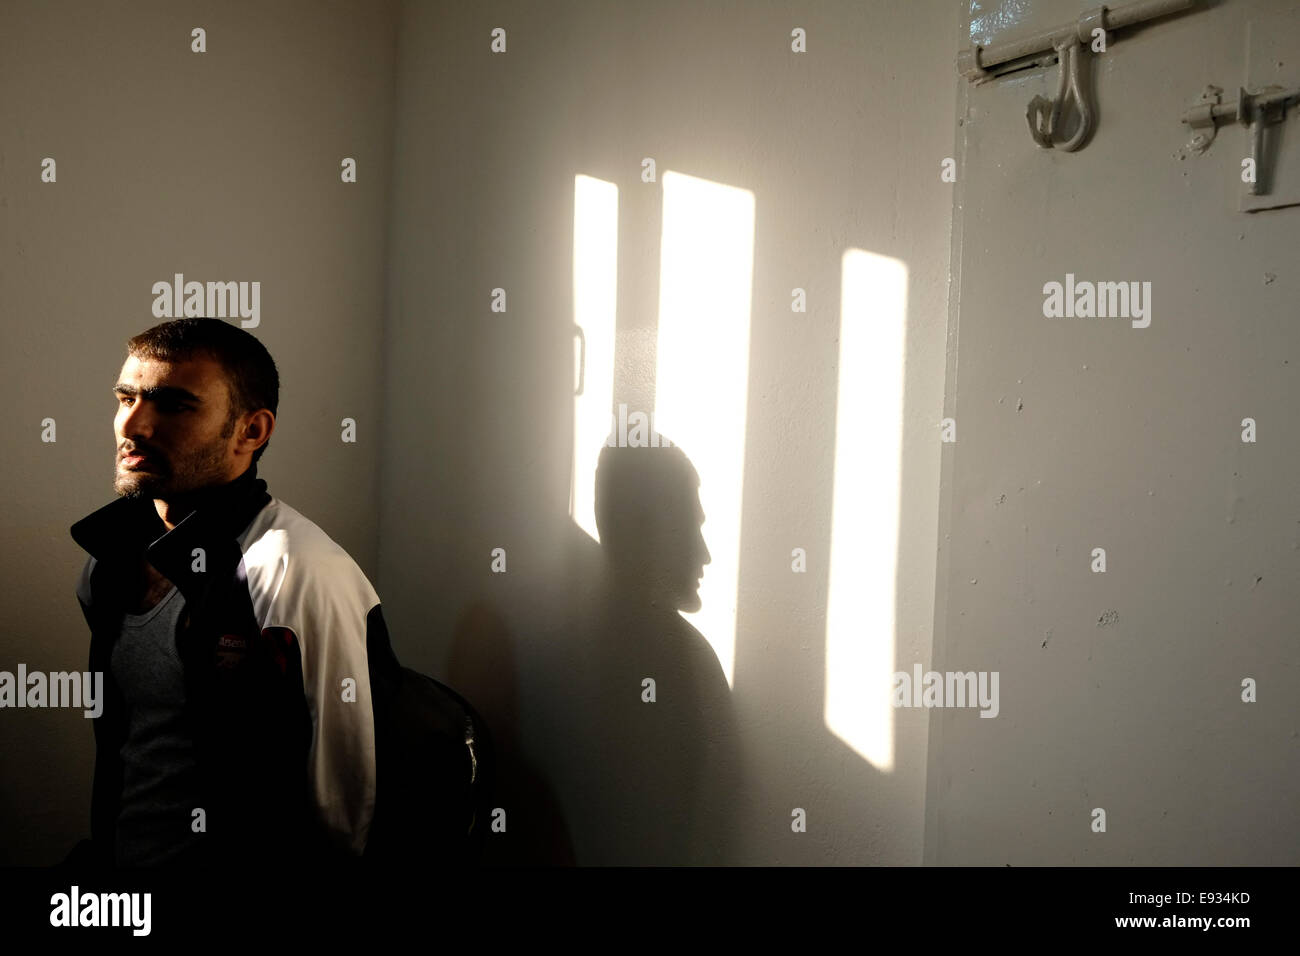 NORTHERN IRAQ - SULAYMANIYAH 09 OCTOBER:  A captured ISIS militant by the name of Sina Obeid from Anbar province - Stock Image